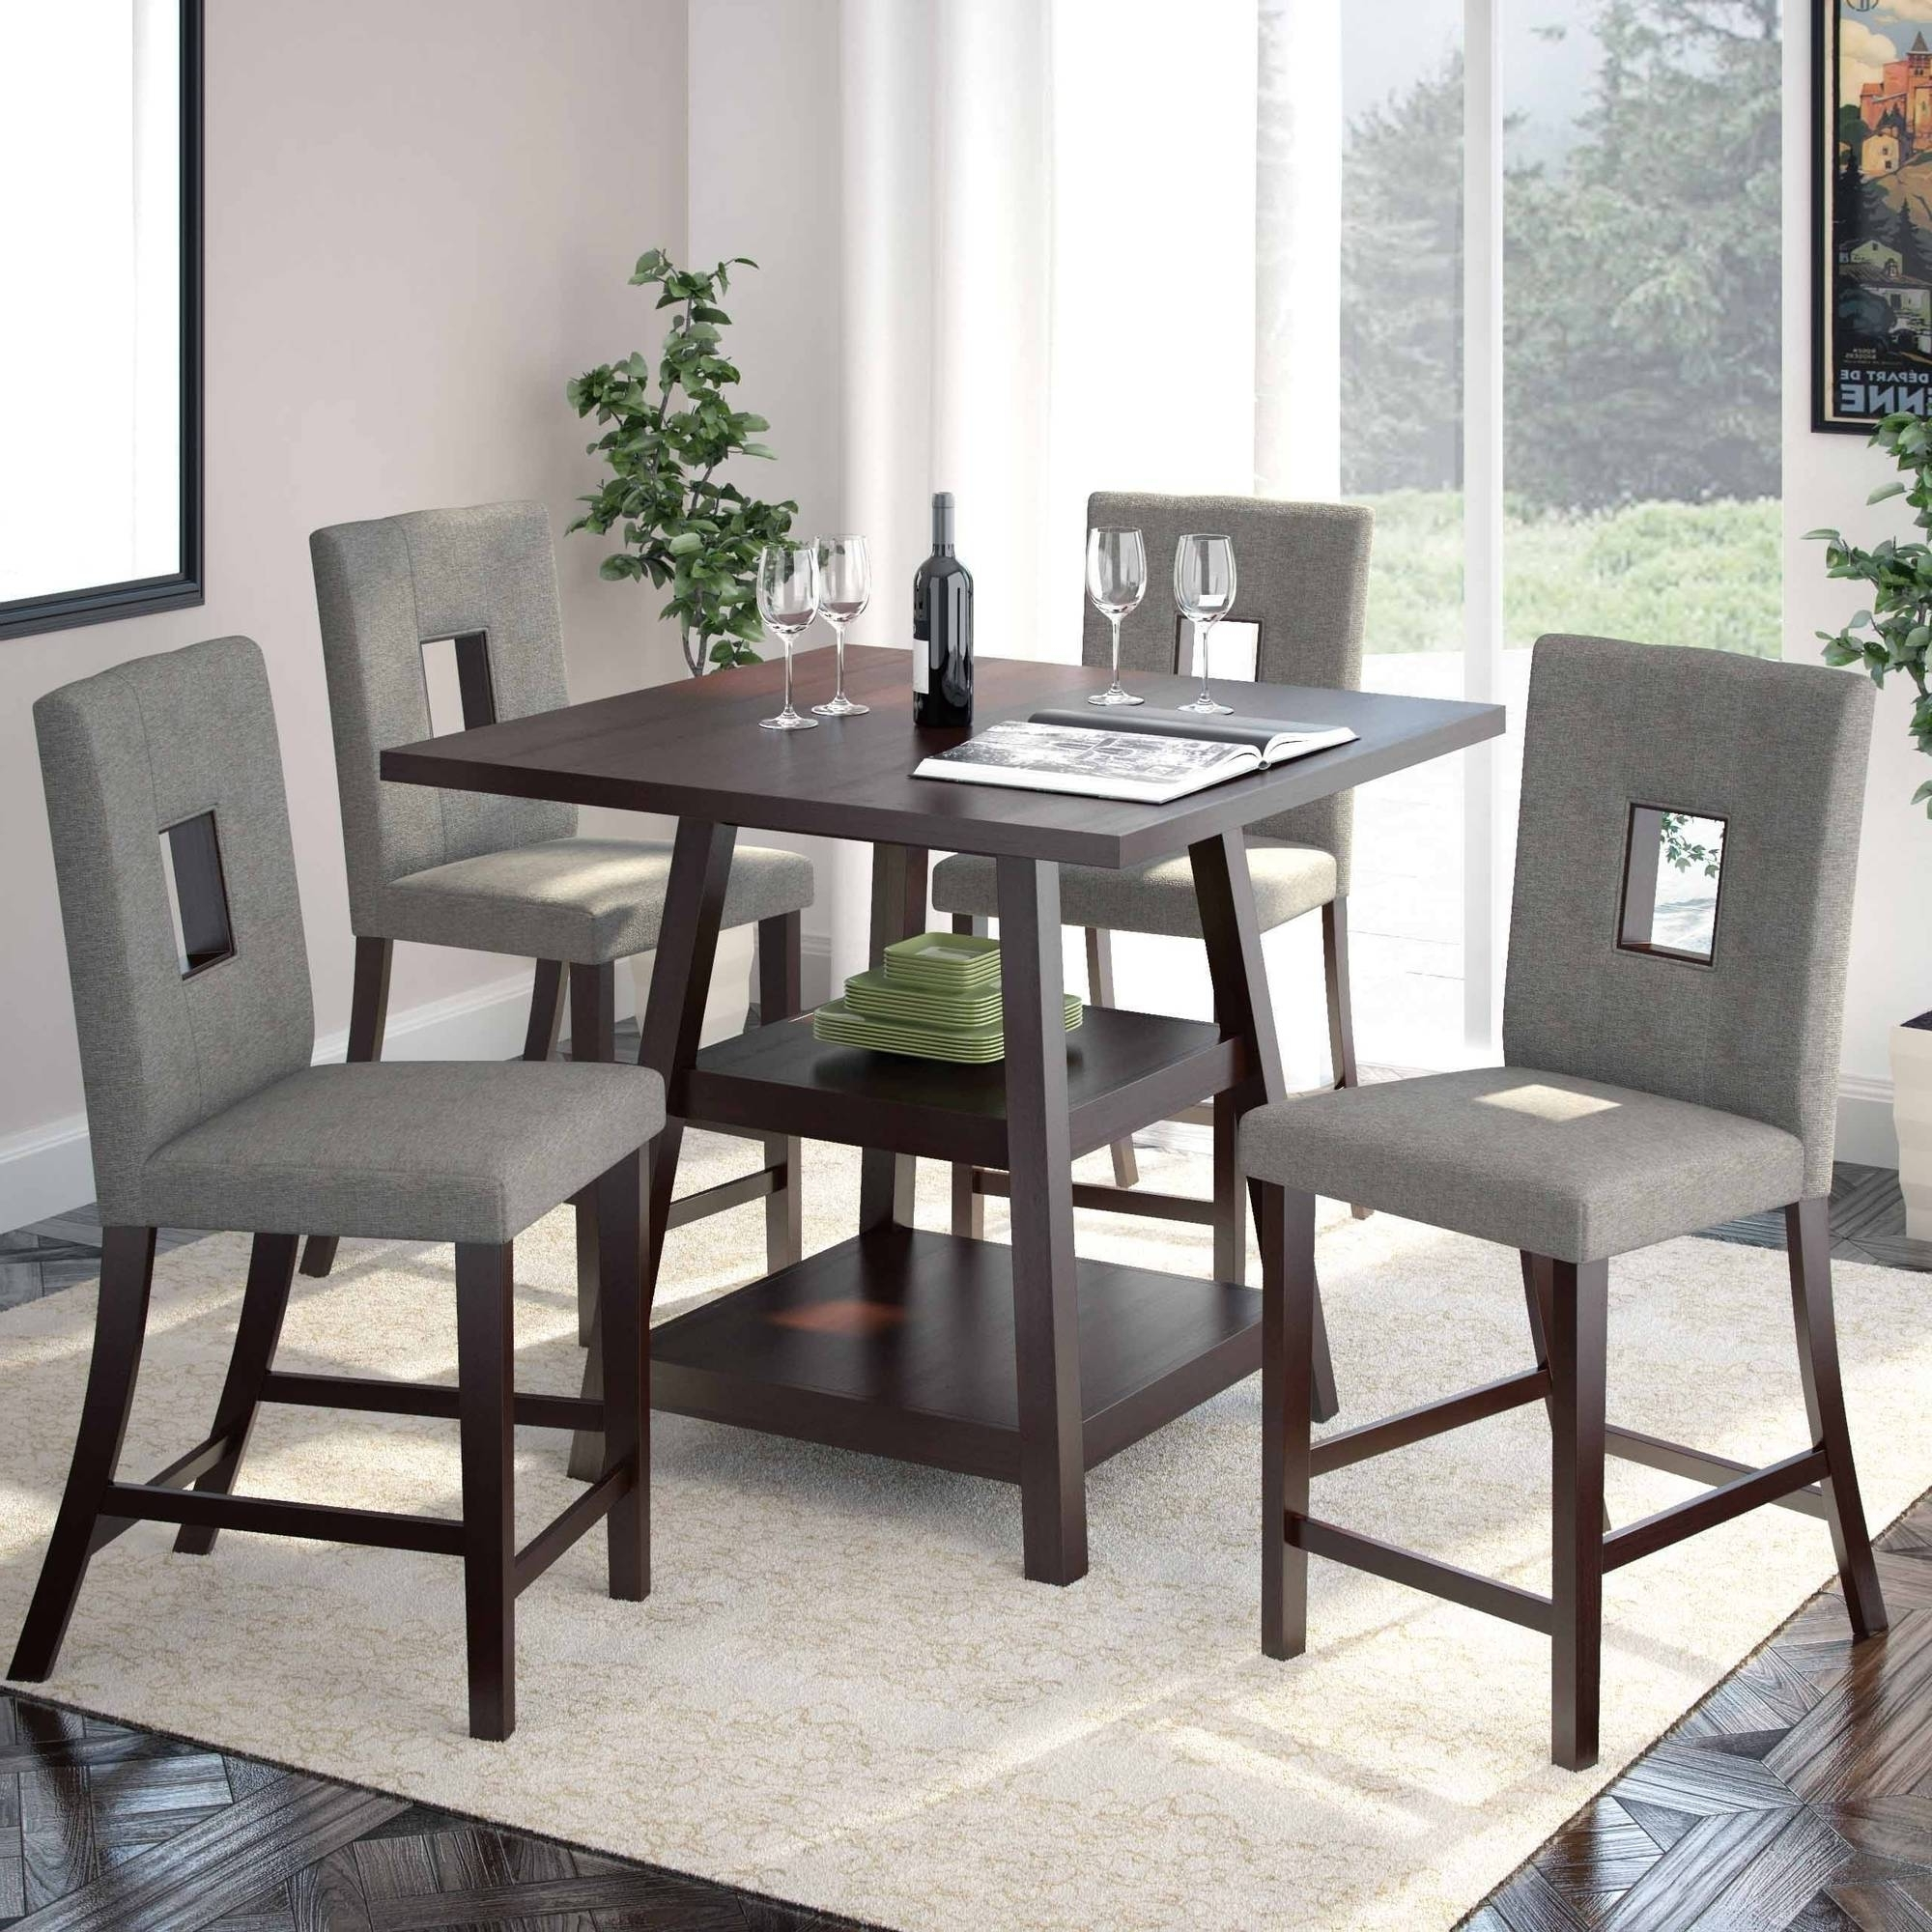 "Corliving Bistro 5Pc 36"" Counter Height Rich Cappuccino Dining Set Intended For Most Recently Released Market 5 Piece Counter Sets (View 2 of 25)"